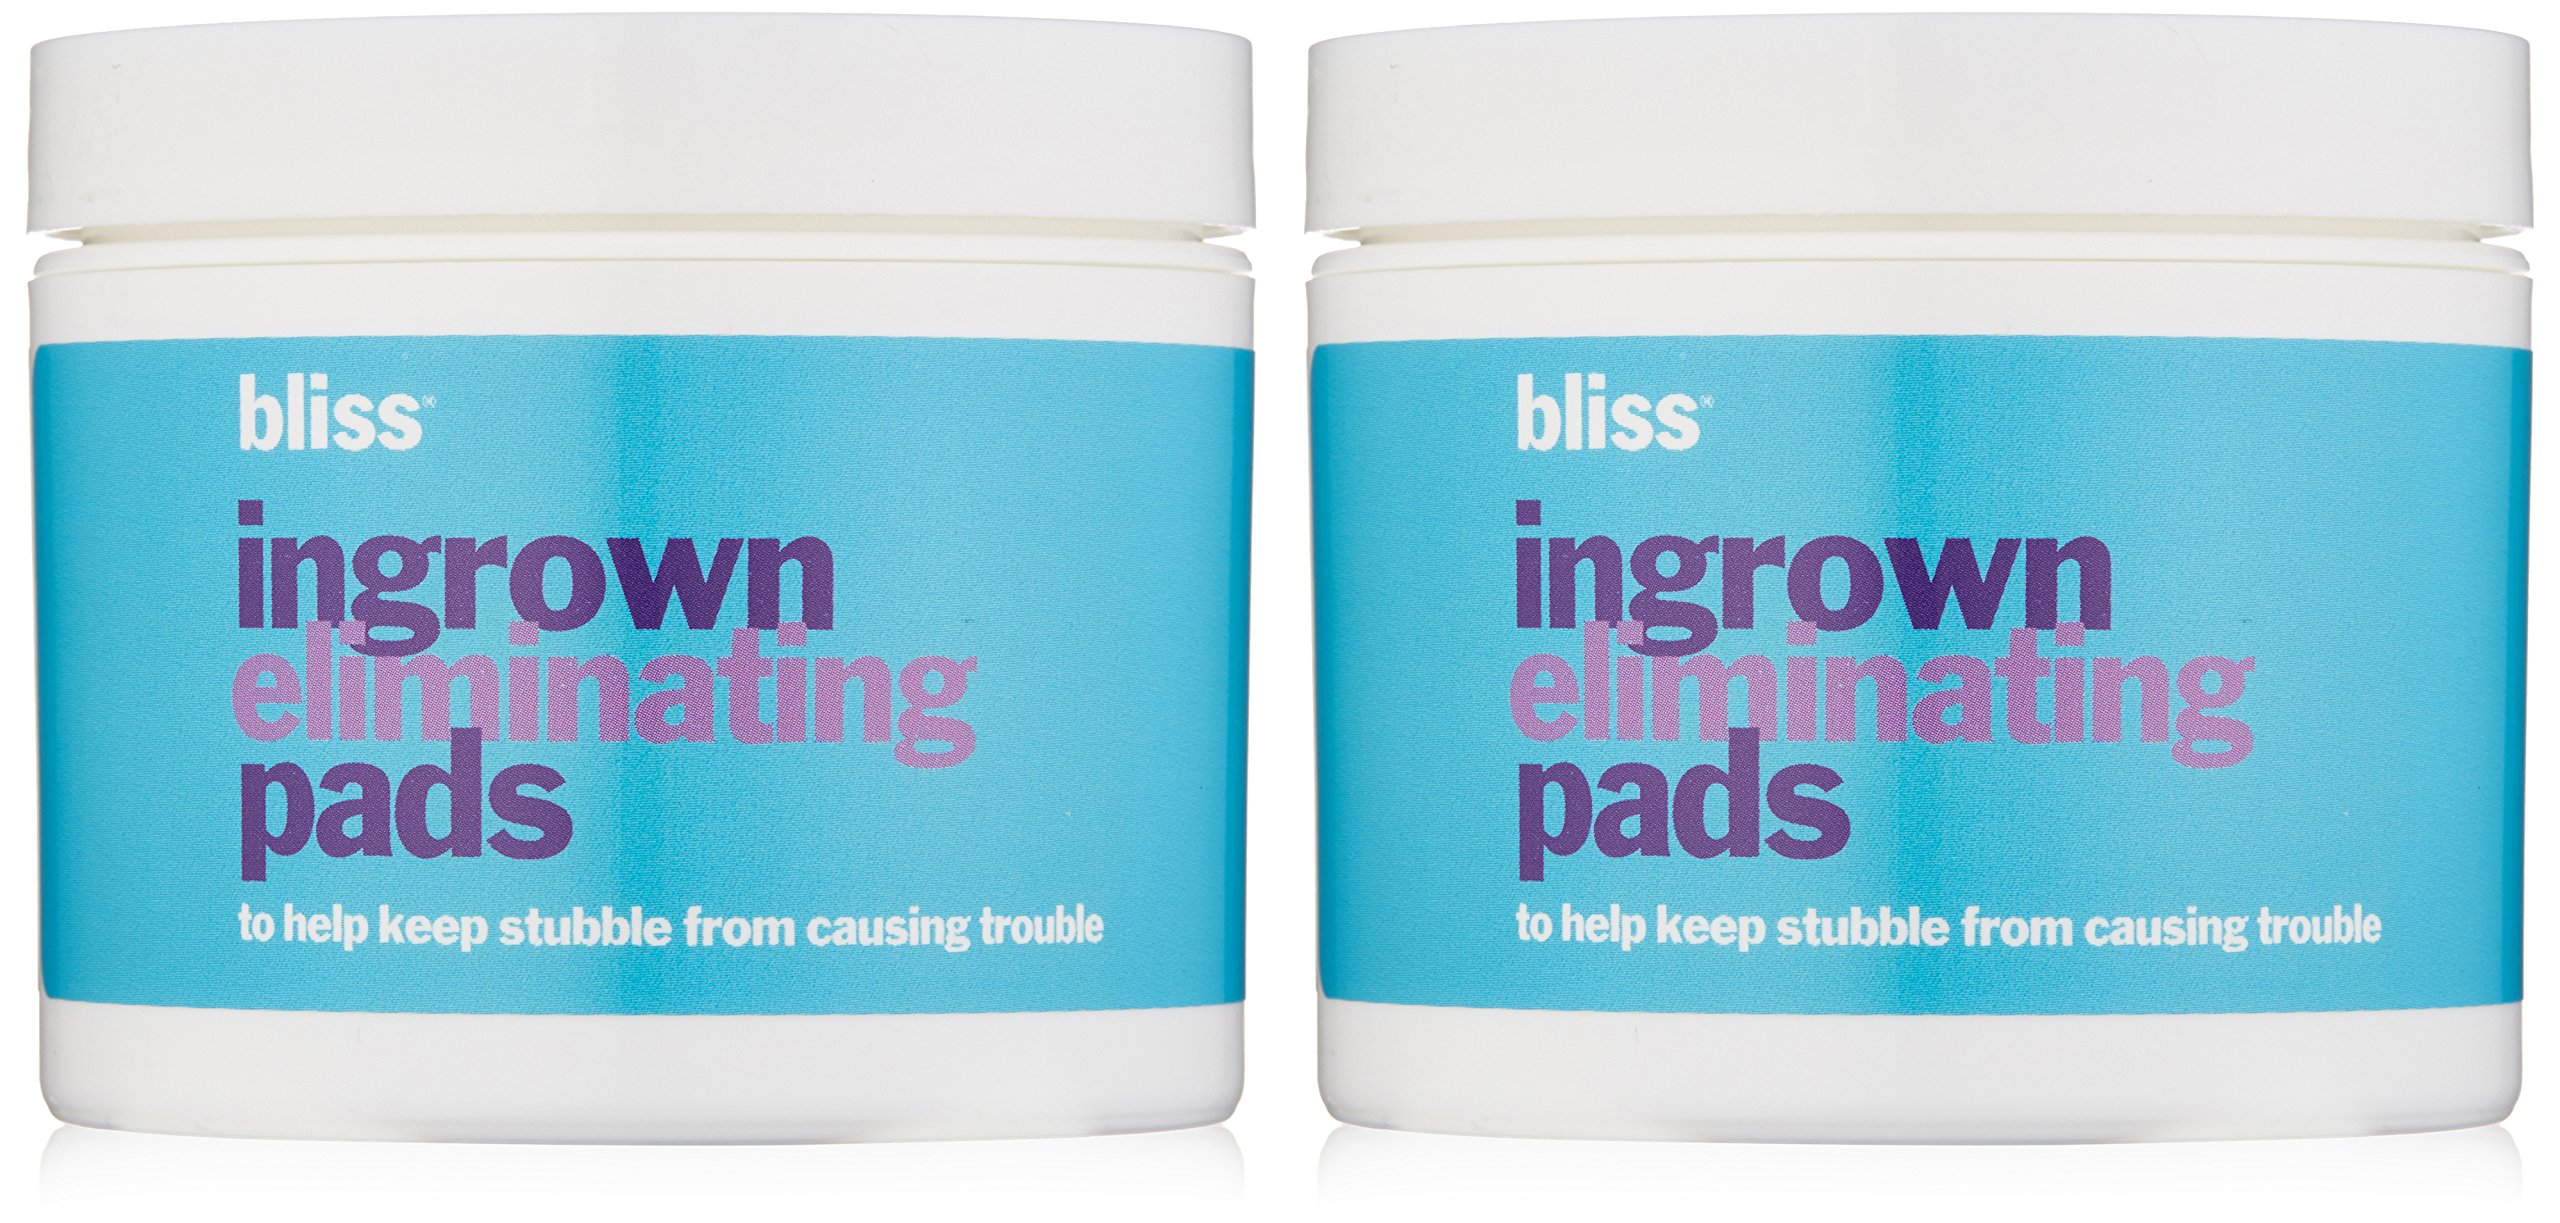 bliss Ingrown Eliminating Pads (Set of 2) | Use Between Waxing/Shaving Sessions | Ingrown Hair Removal Pads | 100 Pads in Total